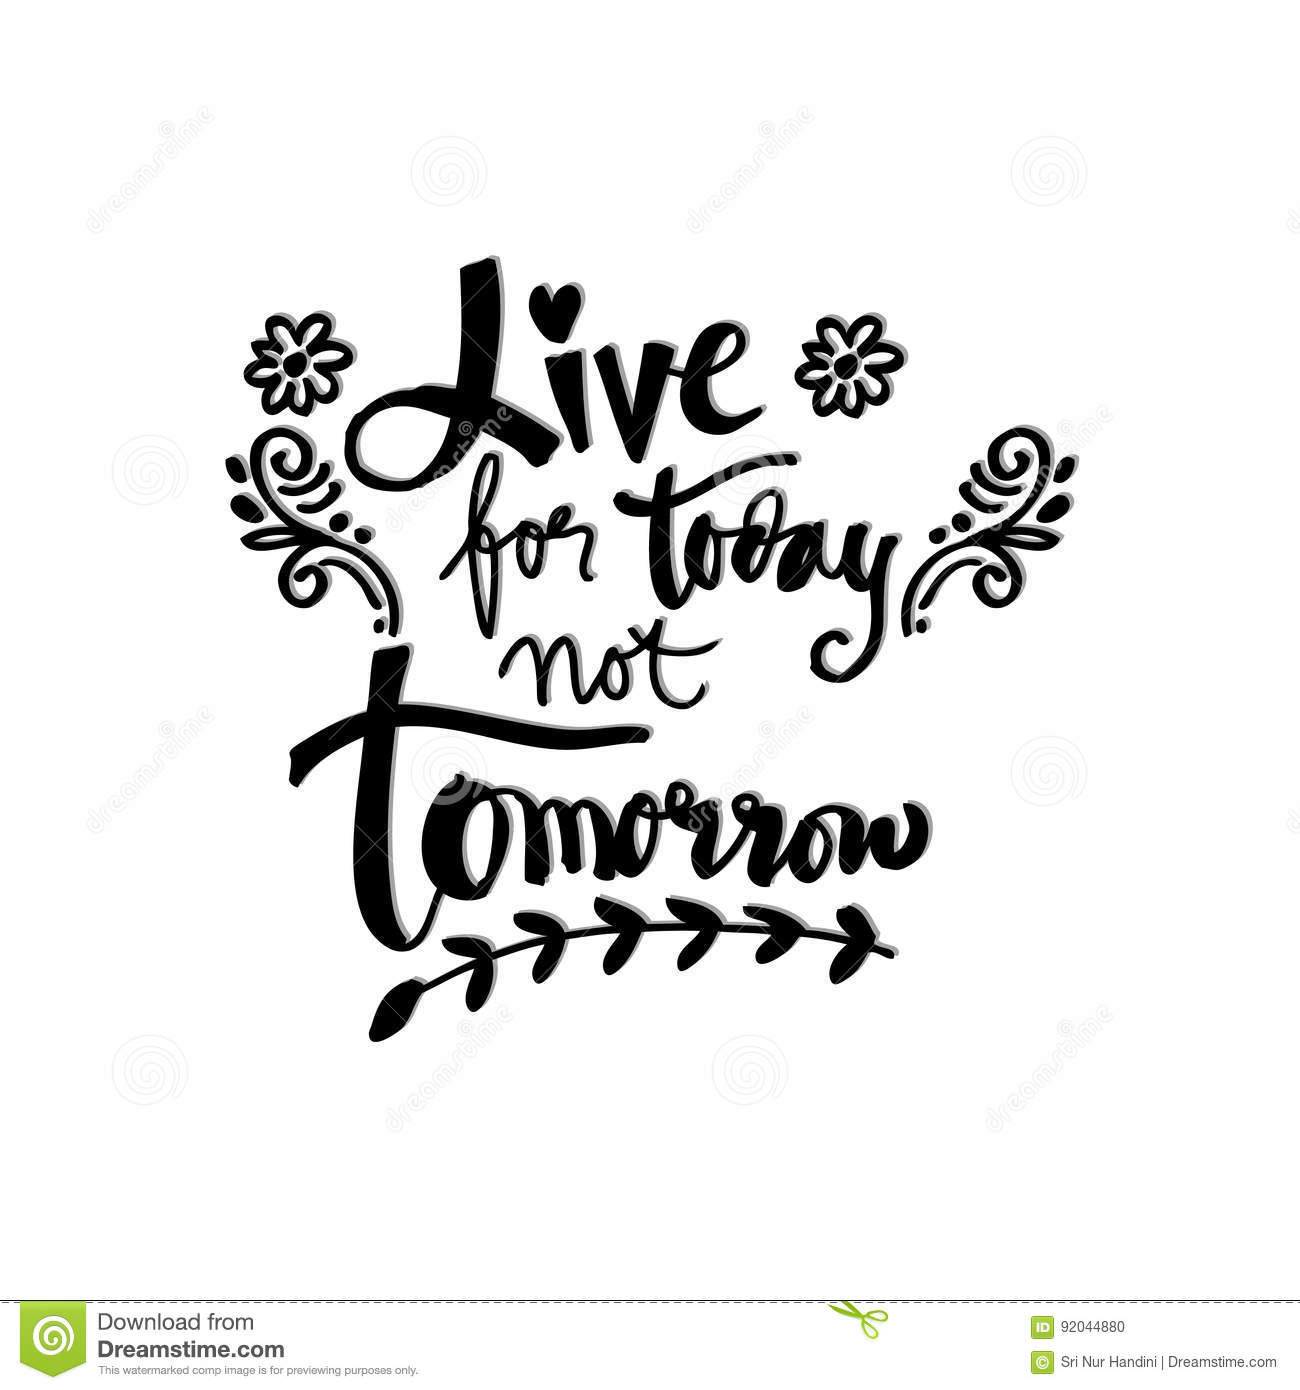 Live For Today Quotes Live For Today Not Tomorrowstock Illustration  Illustration Of